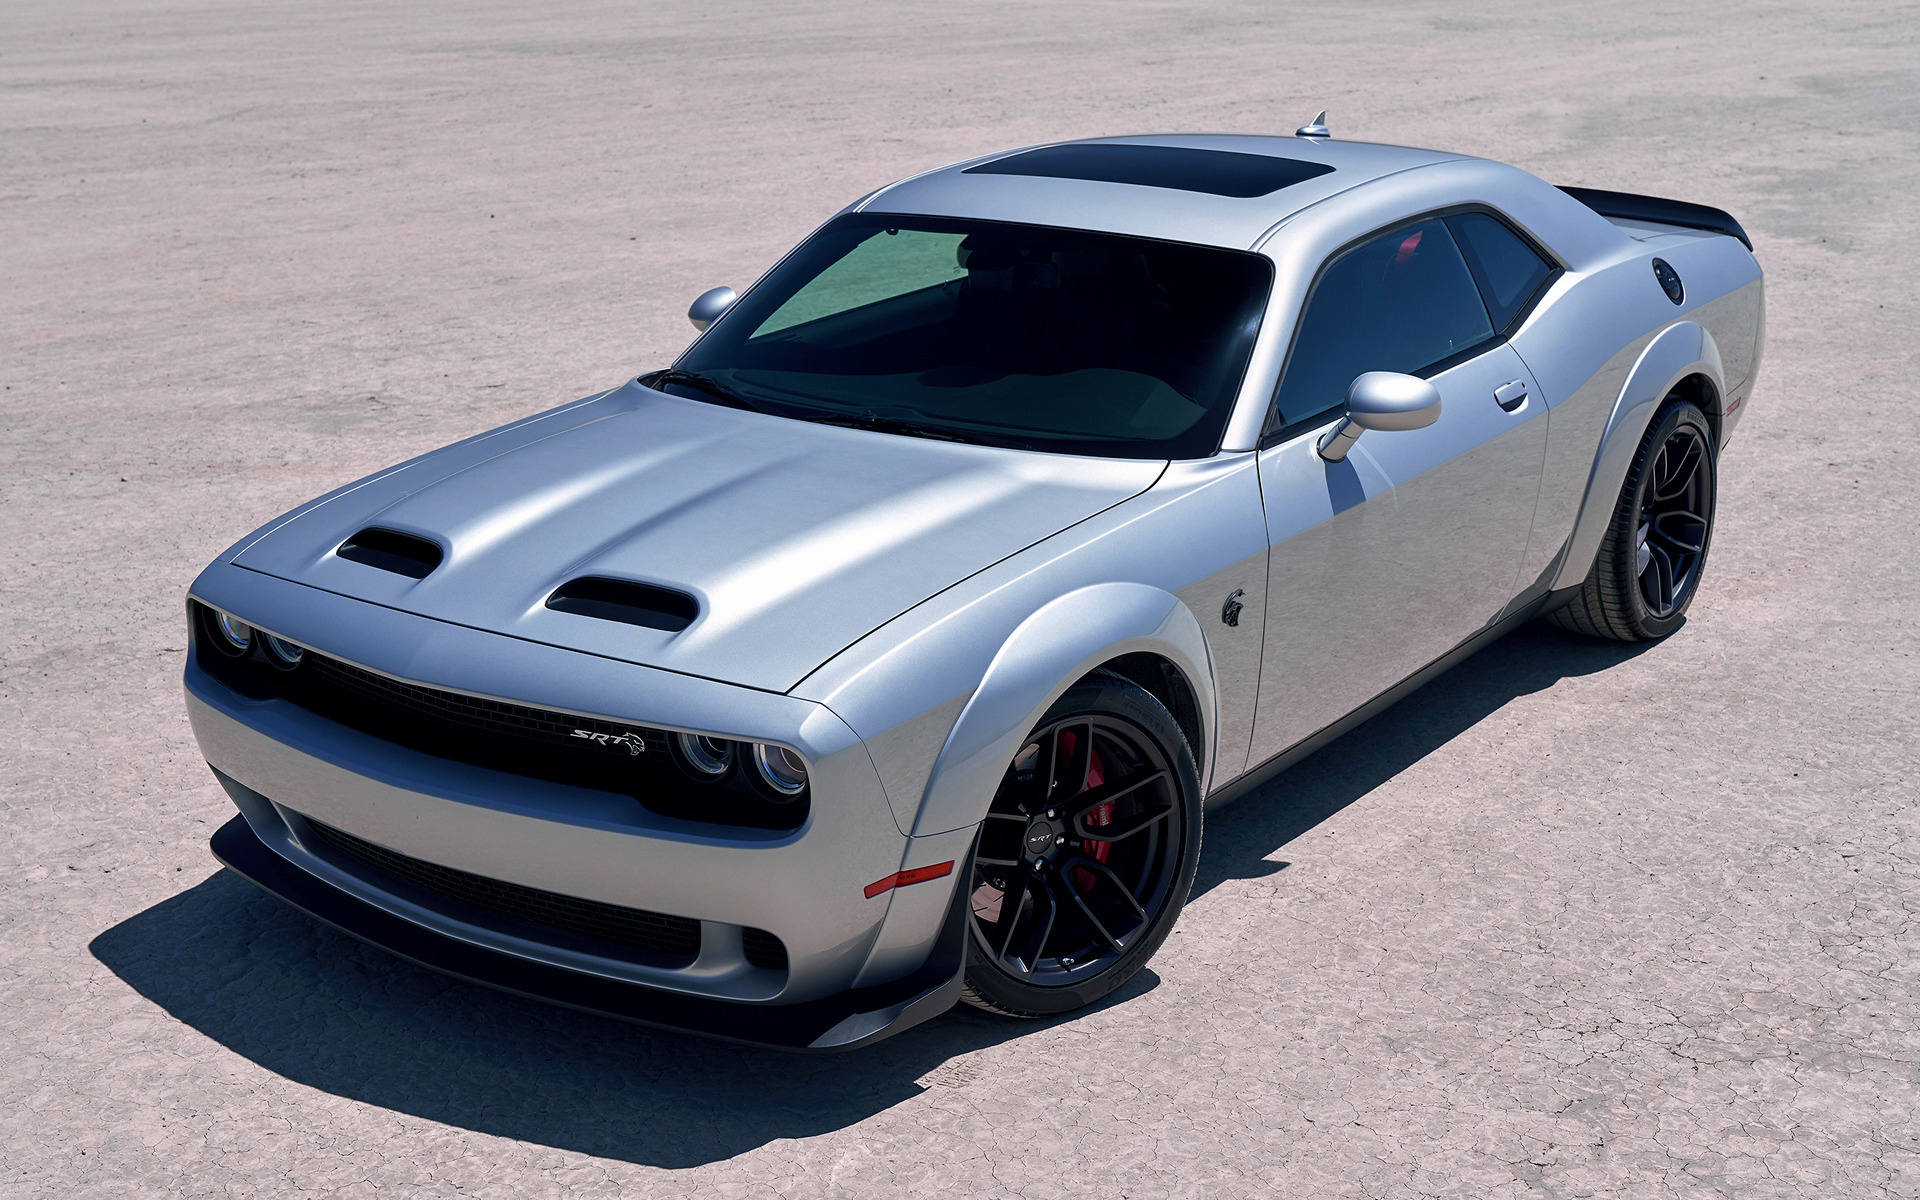 2019 Dodge Challenger Srt Hellcat Redeye Widebody Wallpapers And Hd Images Car Pixel